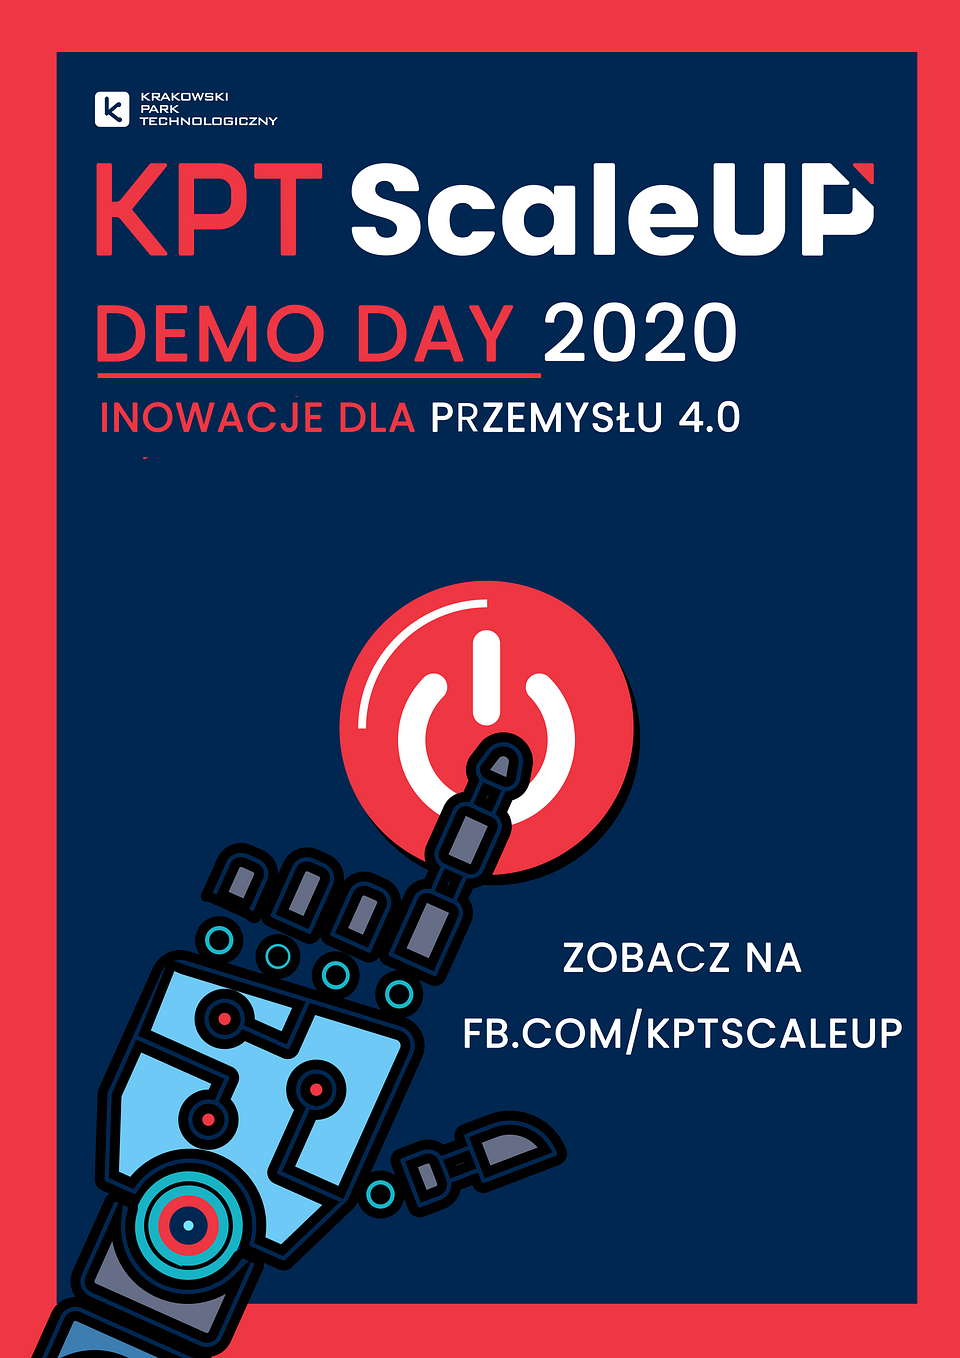 DemoDay2020_mailing3.png